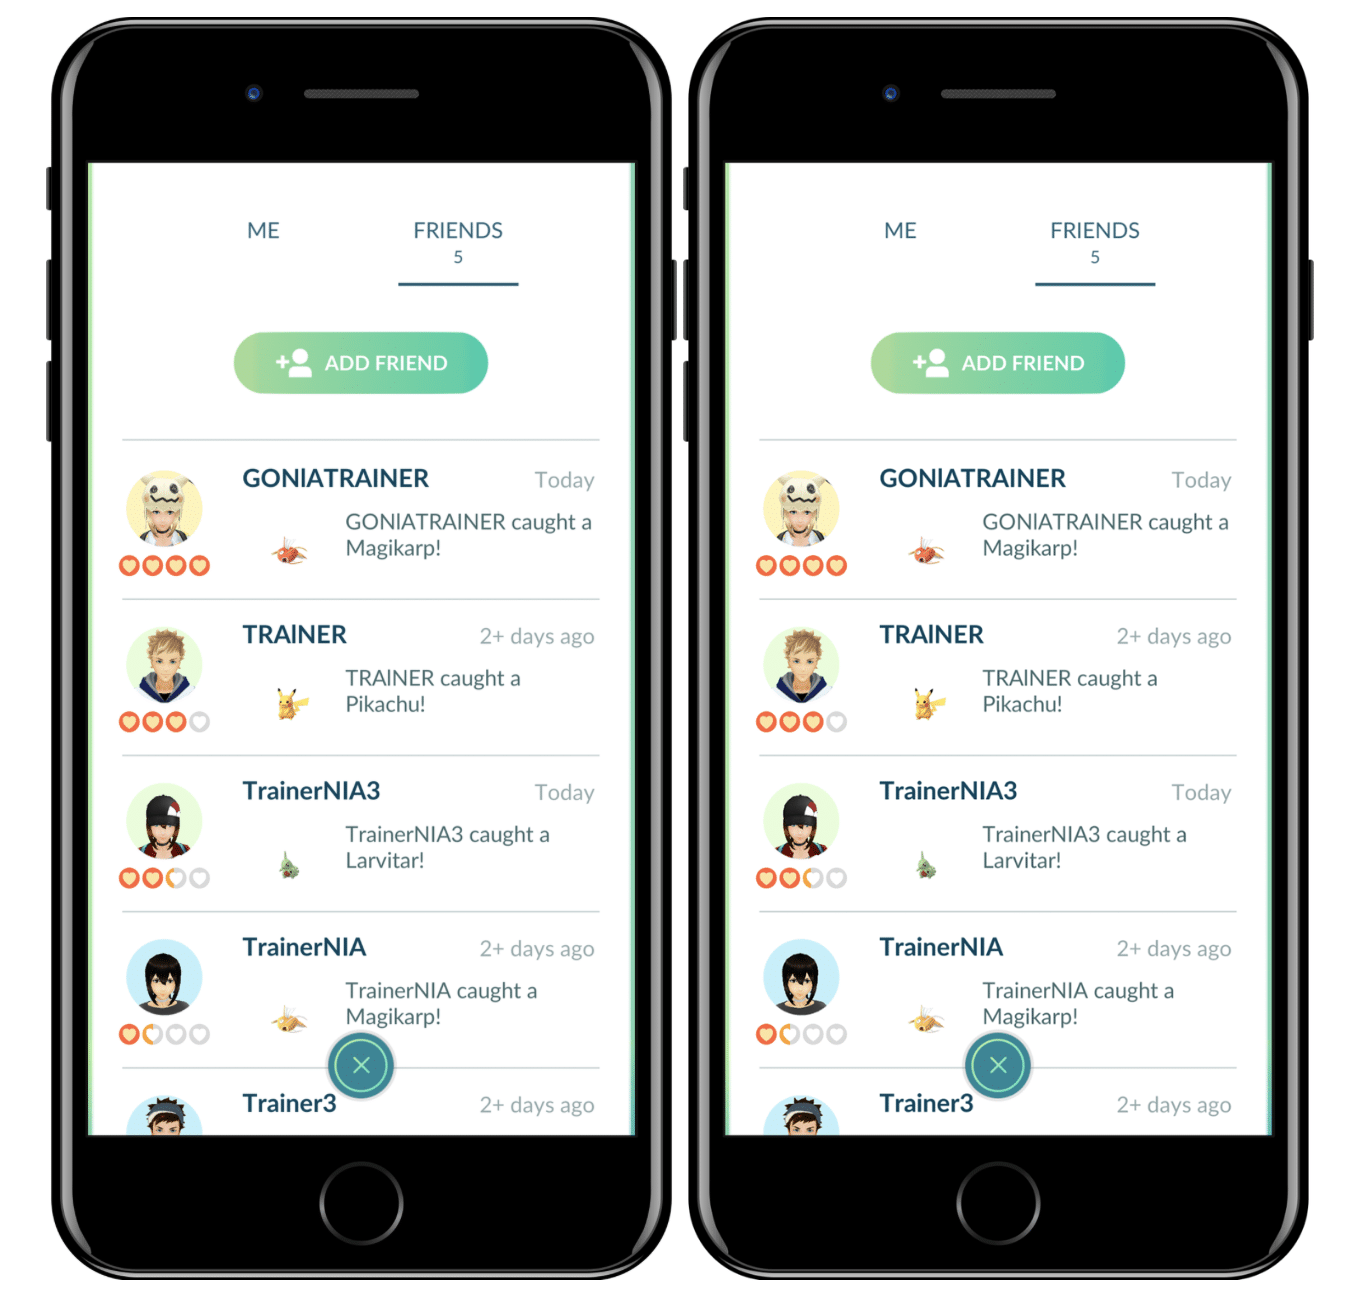 pokemon-go-trading-gifts-friends-5